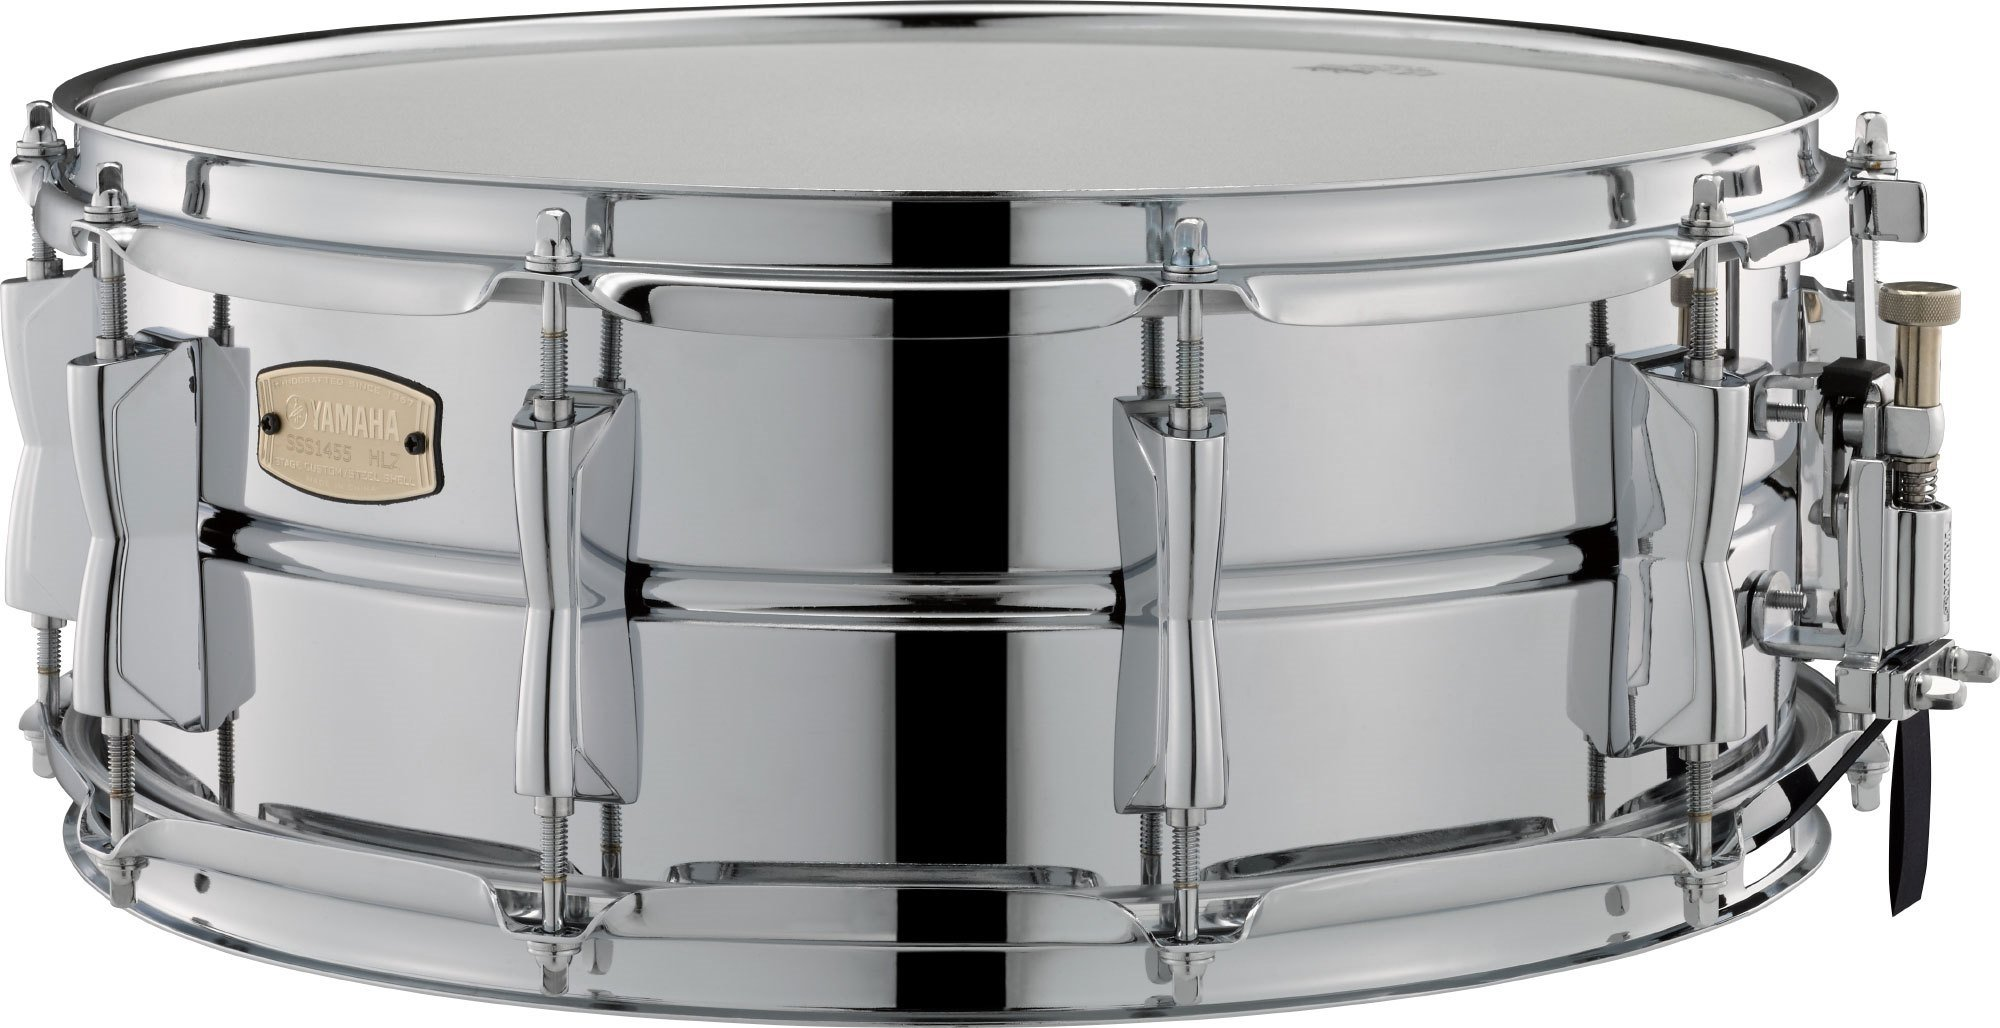 Yamaha Stage Custom Steel Snare Drum (SSS-1455)